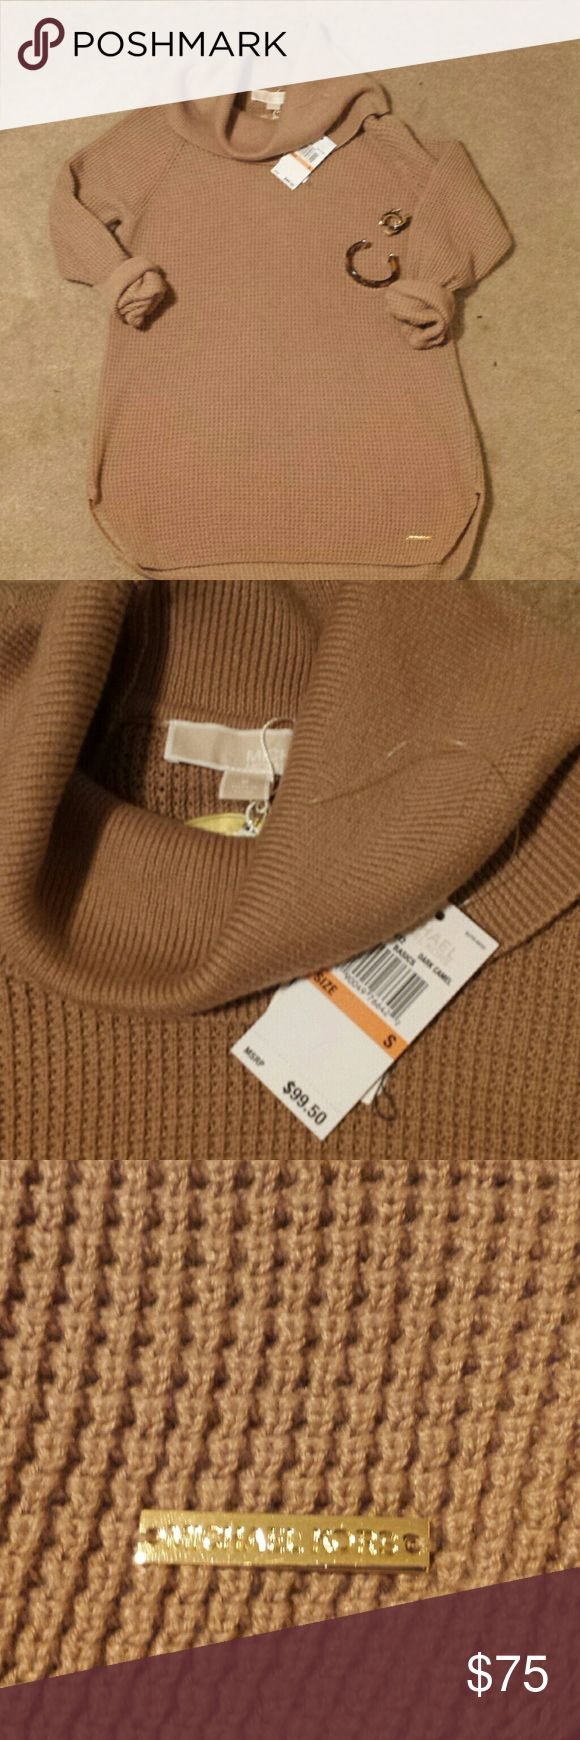 Michael Kor camel cowl neck sweater. size small Beautiful camel colored waffle weave towel neck sweater by Michael Kor   Rounded hem Metal logo plate on the lower hemline  Beautiful and soft cotton blend material   Perfect with dress pants or your favorite jeans very versatile and classically styled  Retail 9950   ****************** no low-ball offers will be acknowledged  No trades  NO bundles over 5 lbs  ******************  Happy Poshing!! Michael Kors Sweaters Cowl & Turtlenecks